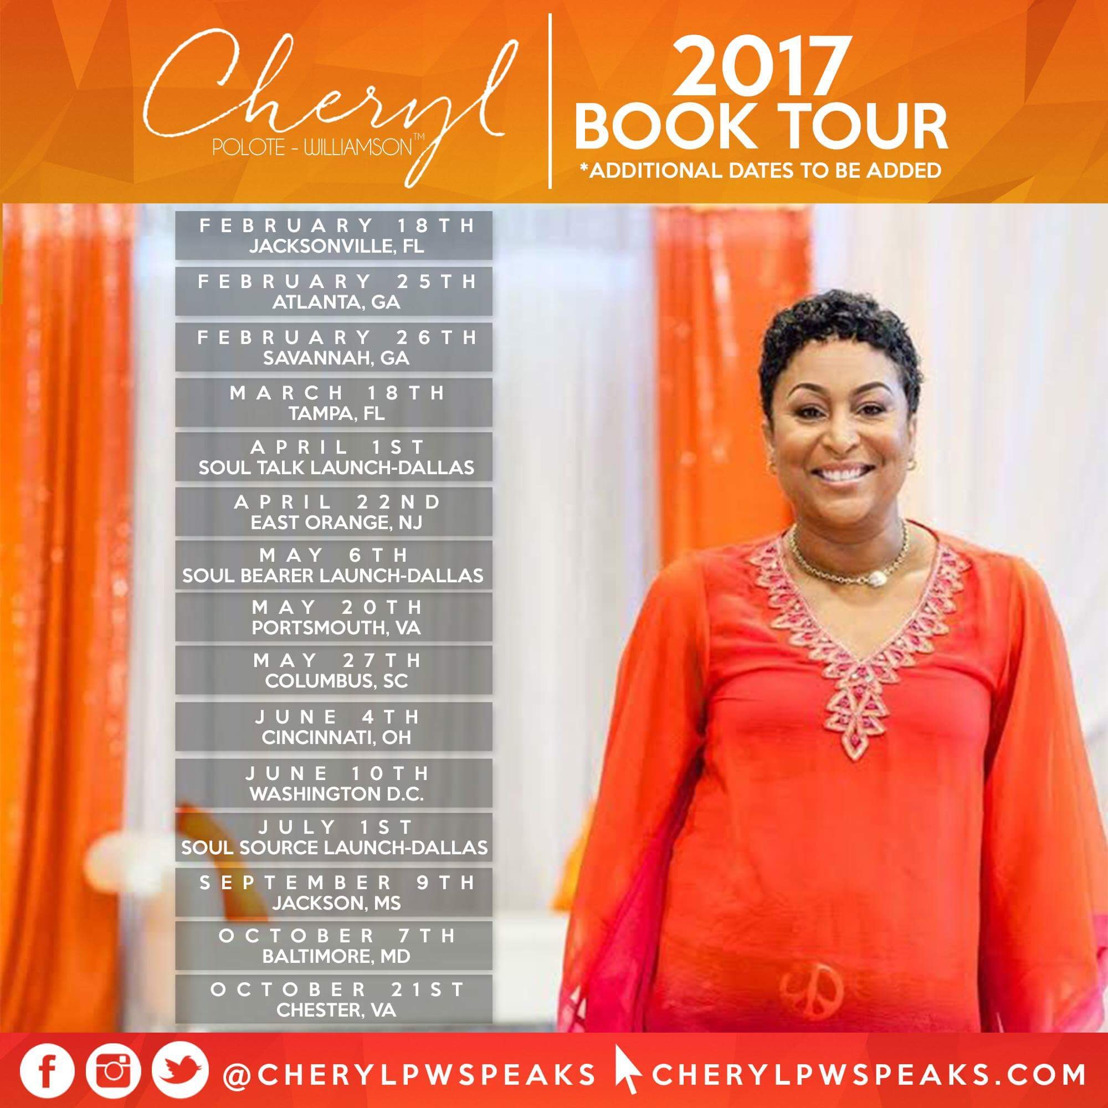 4 Time Best Selling Author Cheryl Polote-Williamson Announces Affirmed Book Tour with a hometown visit to Savannah, GA.